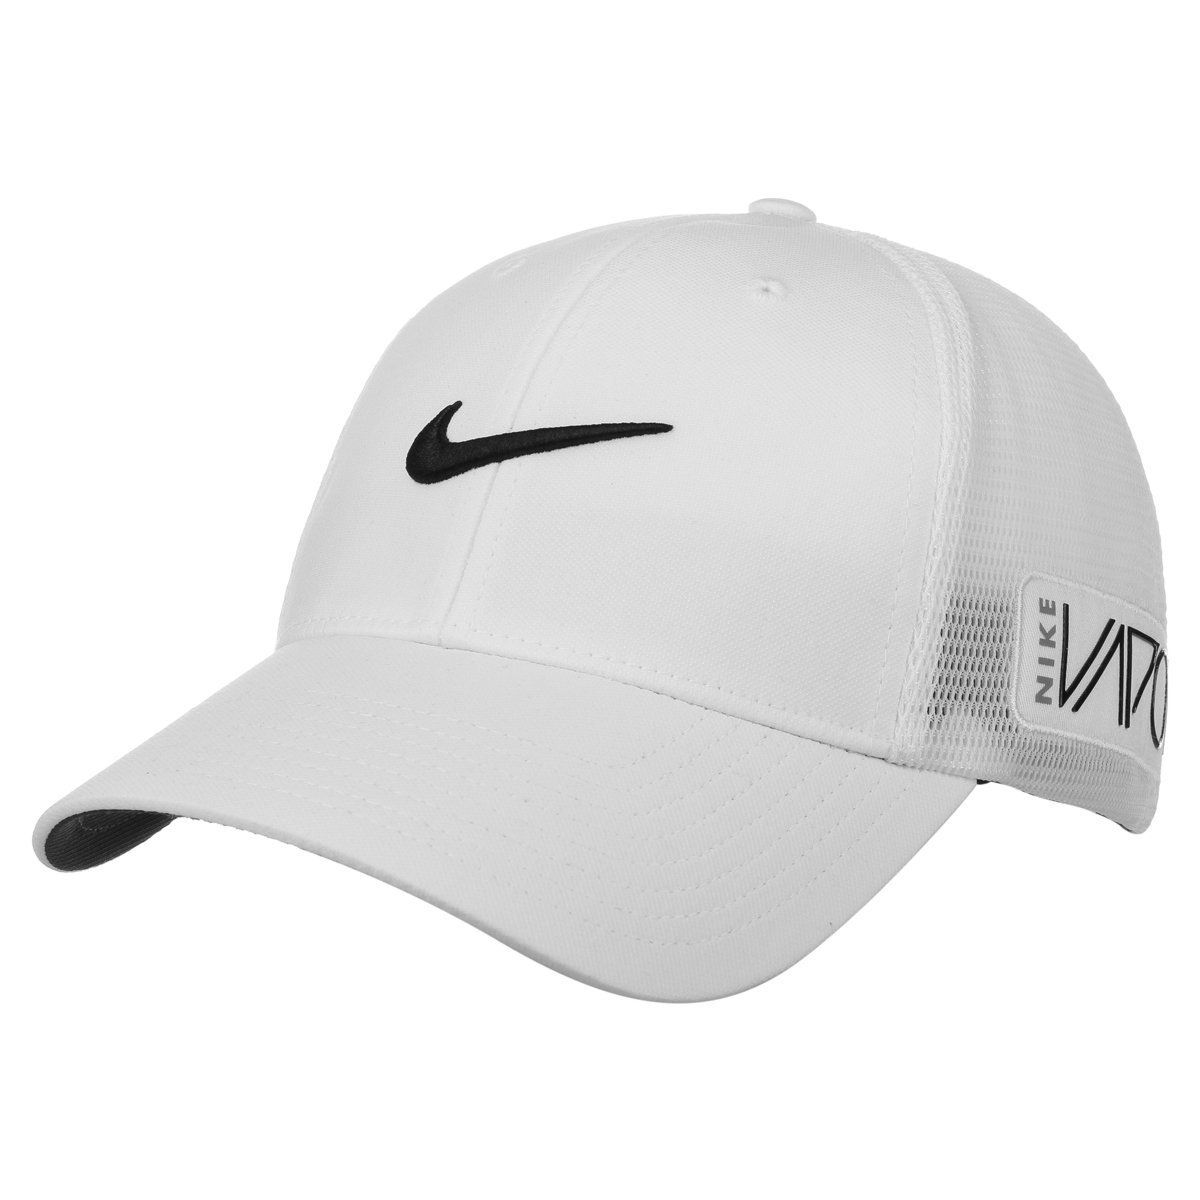 e73097e2ec6 Get Quotations · NEW Nike Tour Legacy Mesh RZN Vapor White Fitted M L Hat  Cap